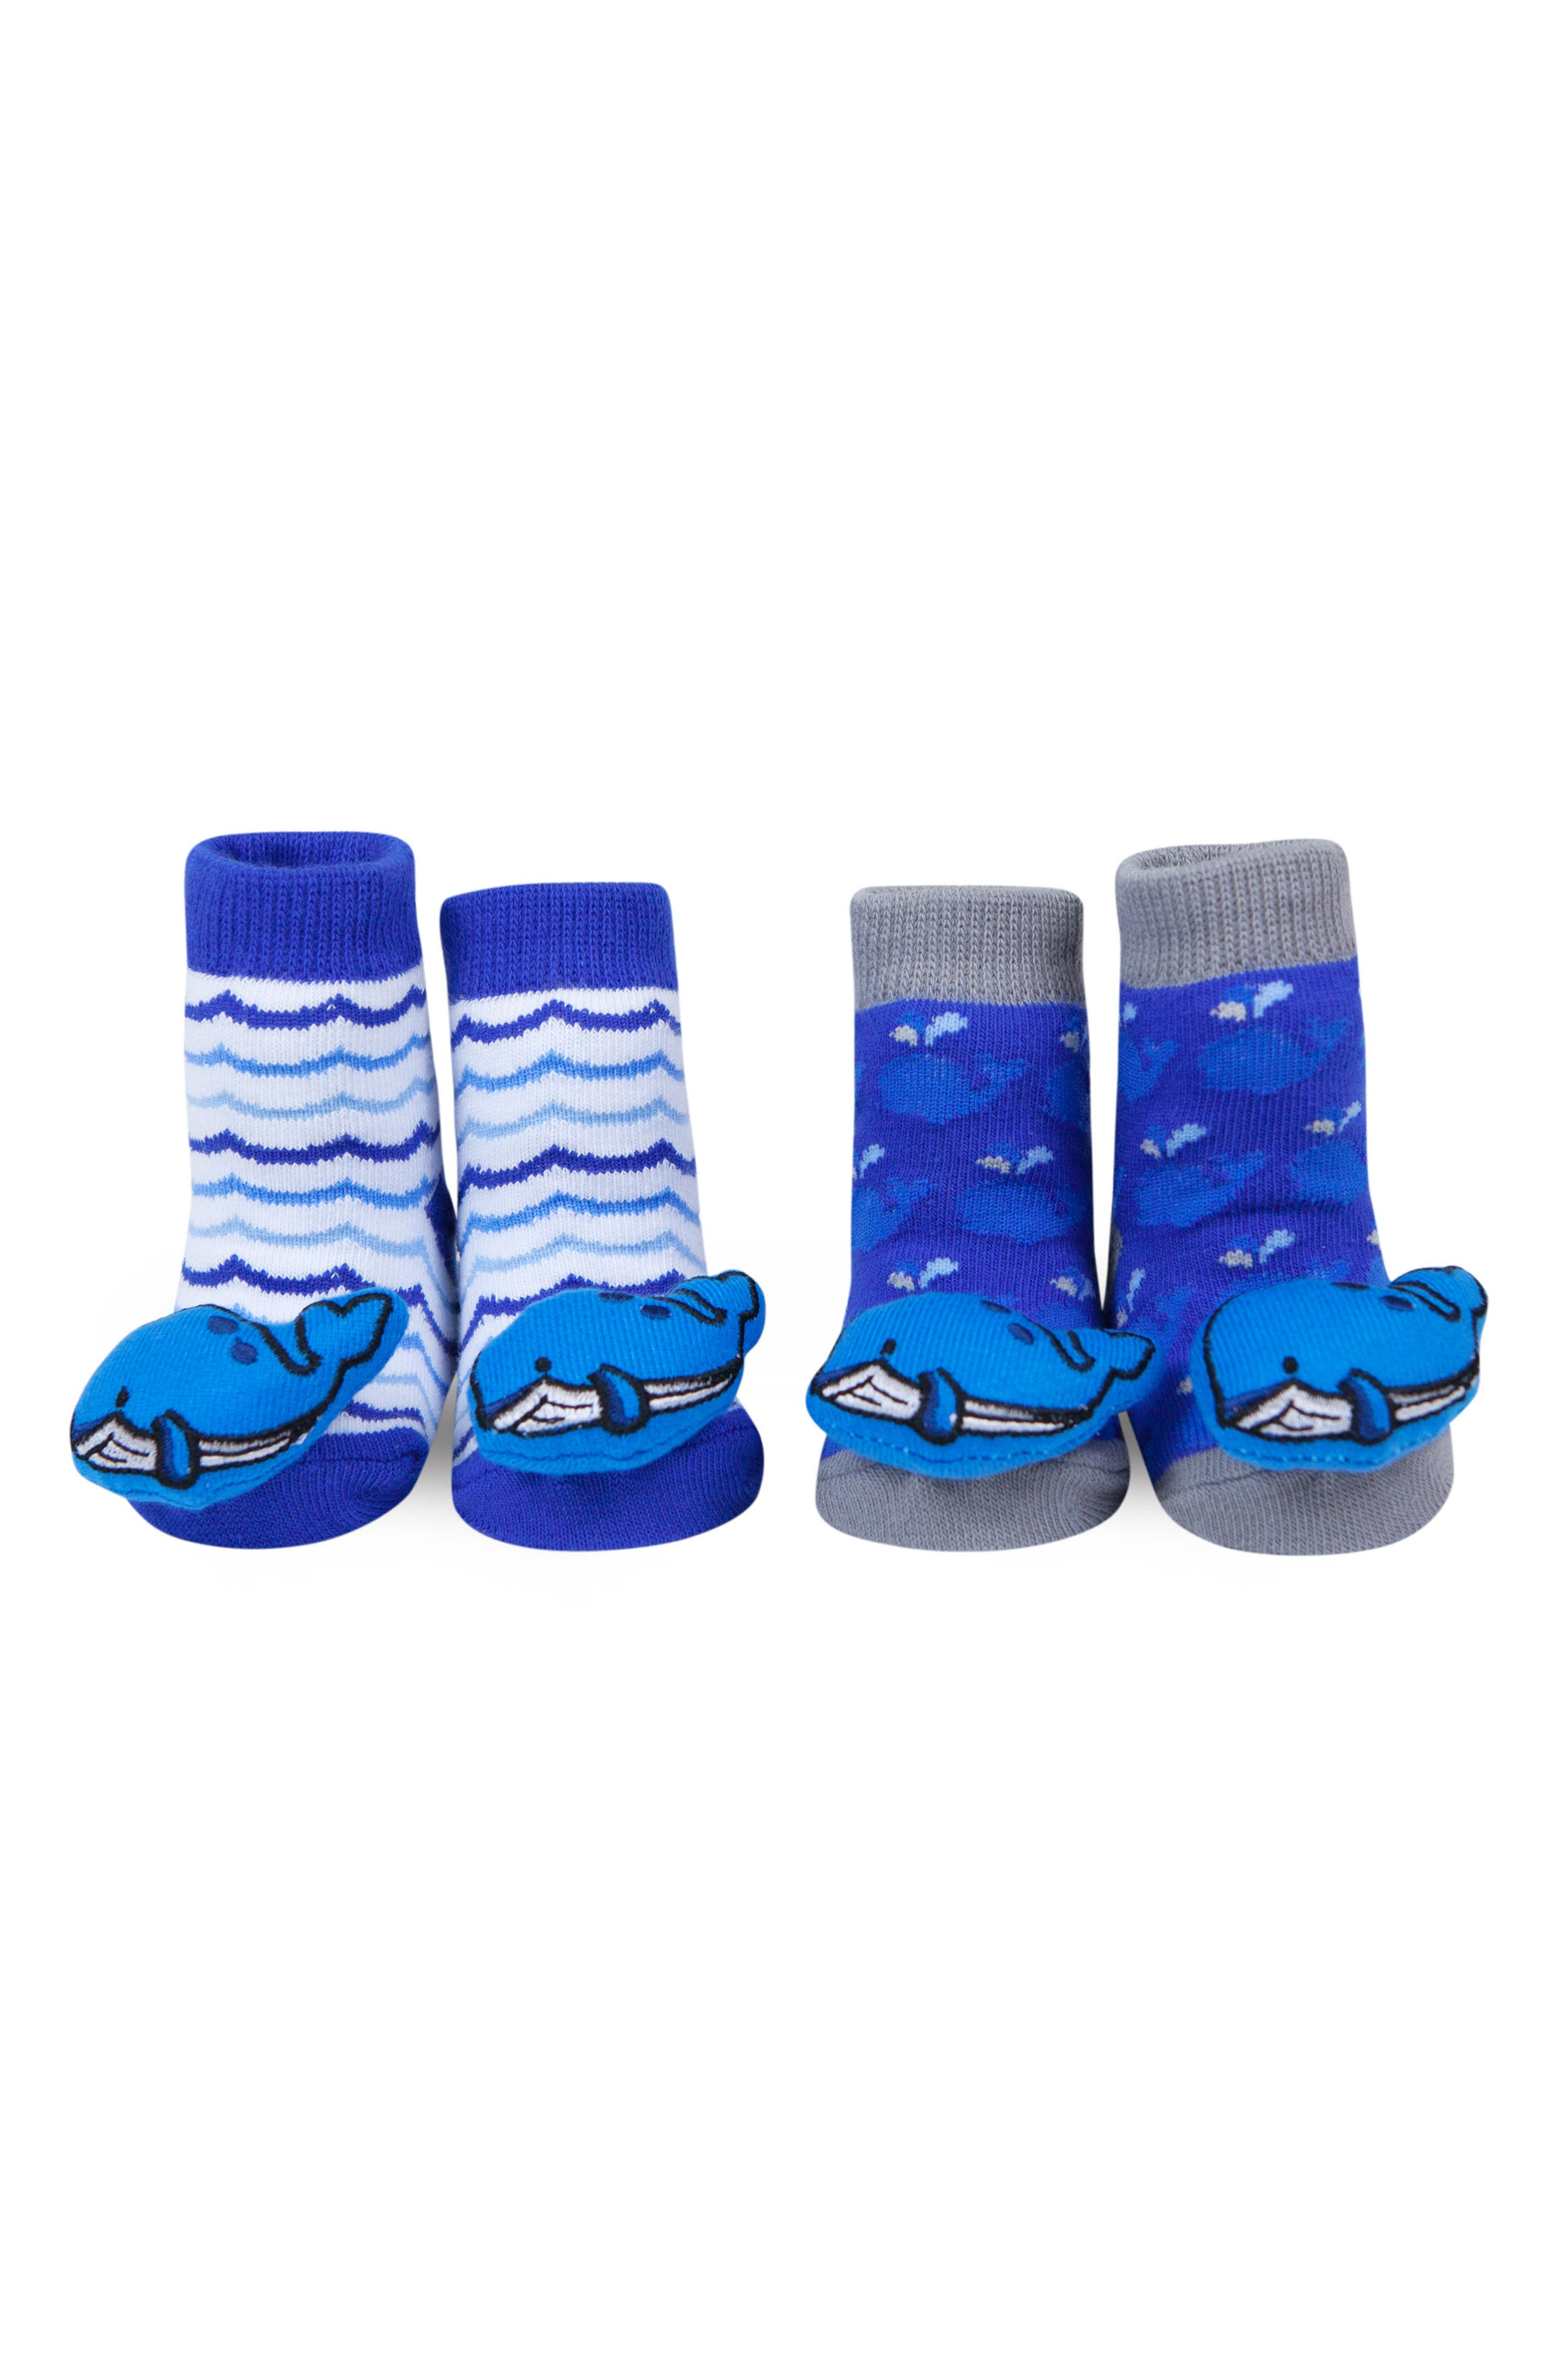 & Friends Whales 2-Pack Rattle Socks,                         Main,                         color,